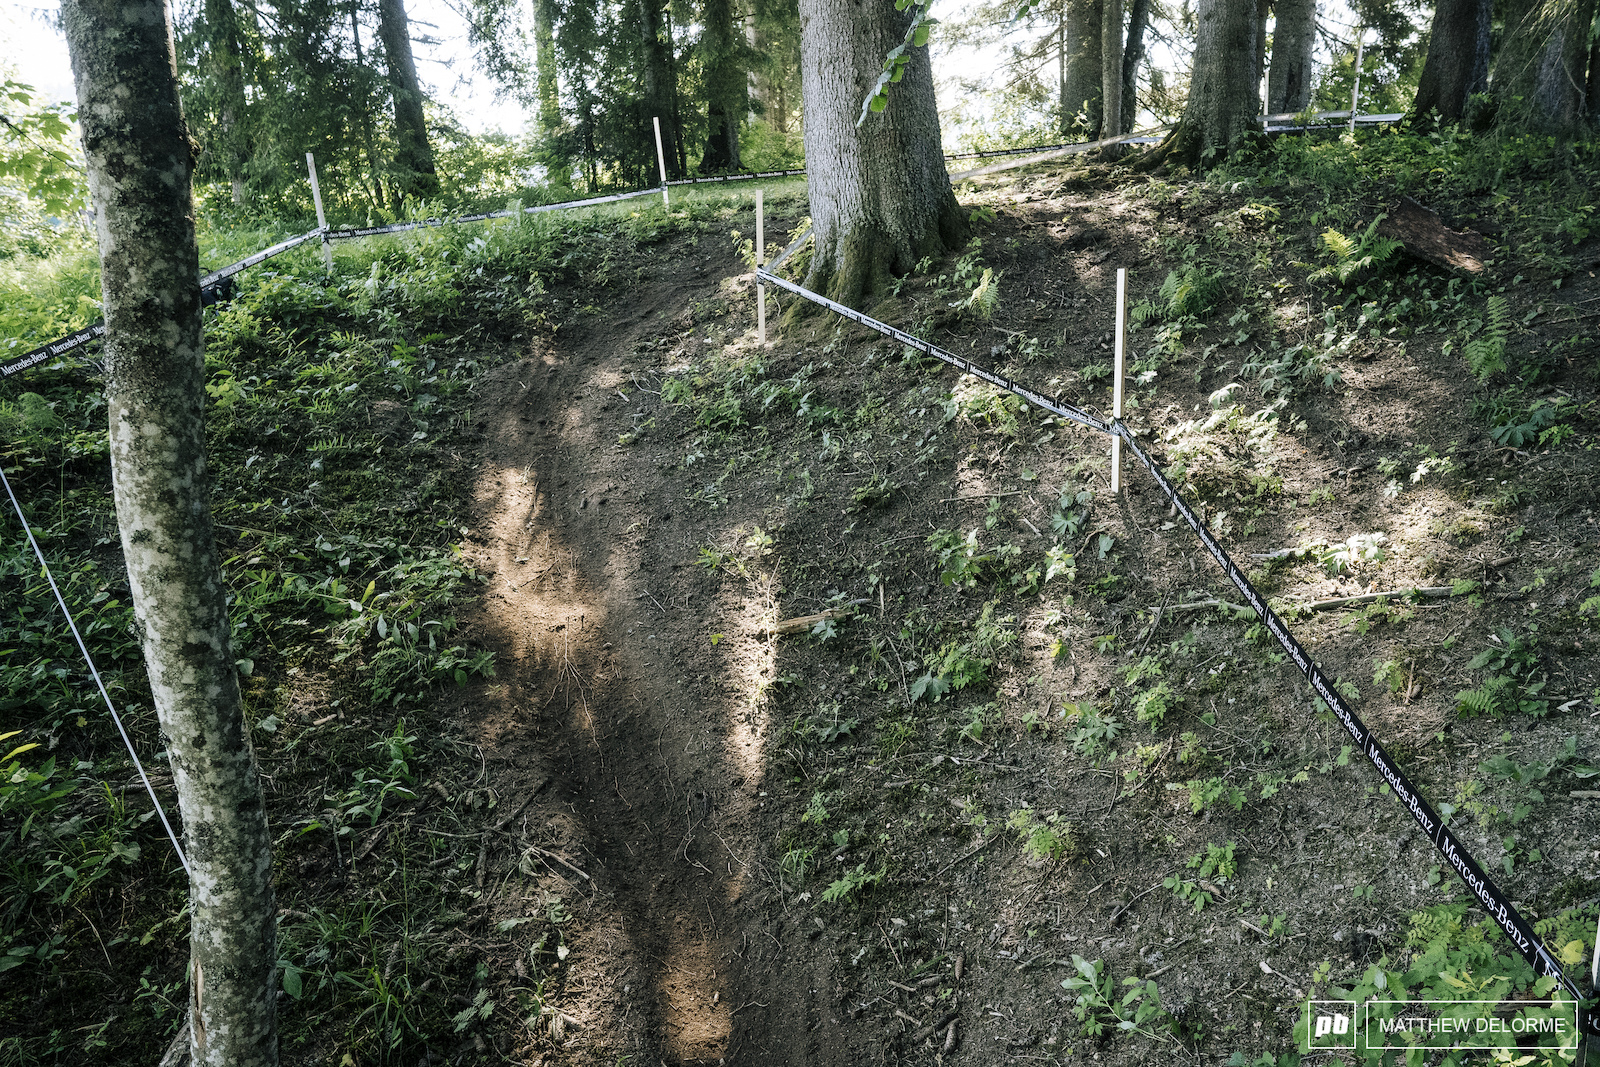 Perhaps the best part of the course is a few quick single track s turns that are simply beautiful.